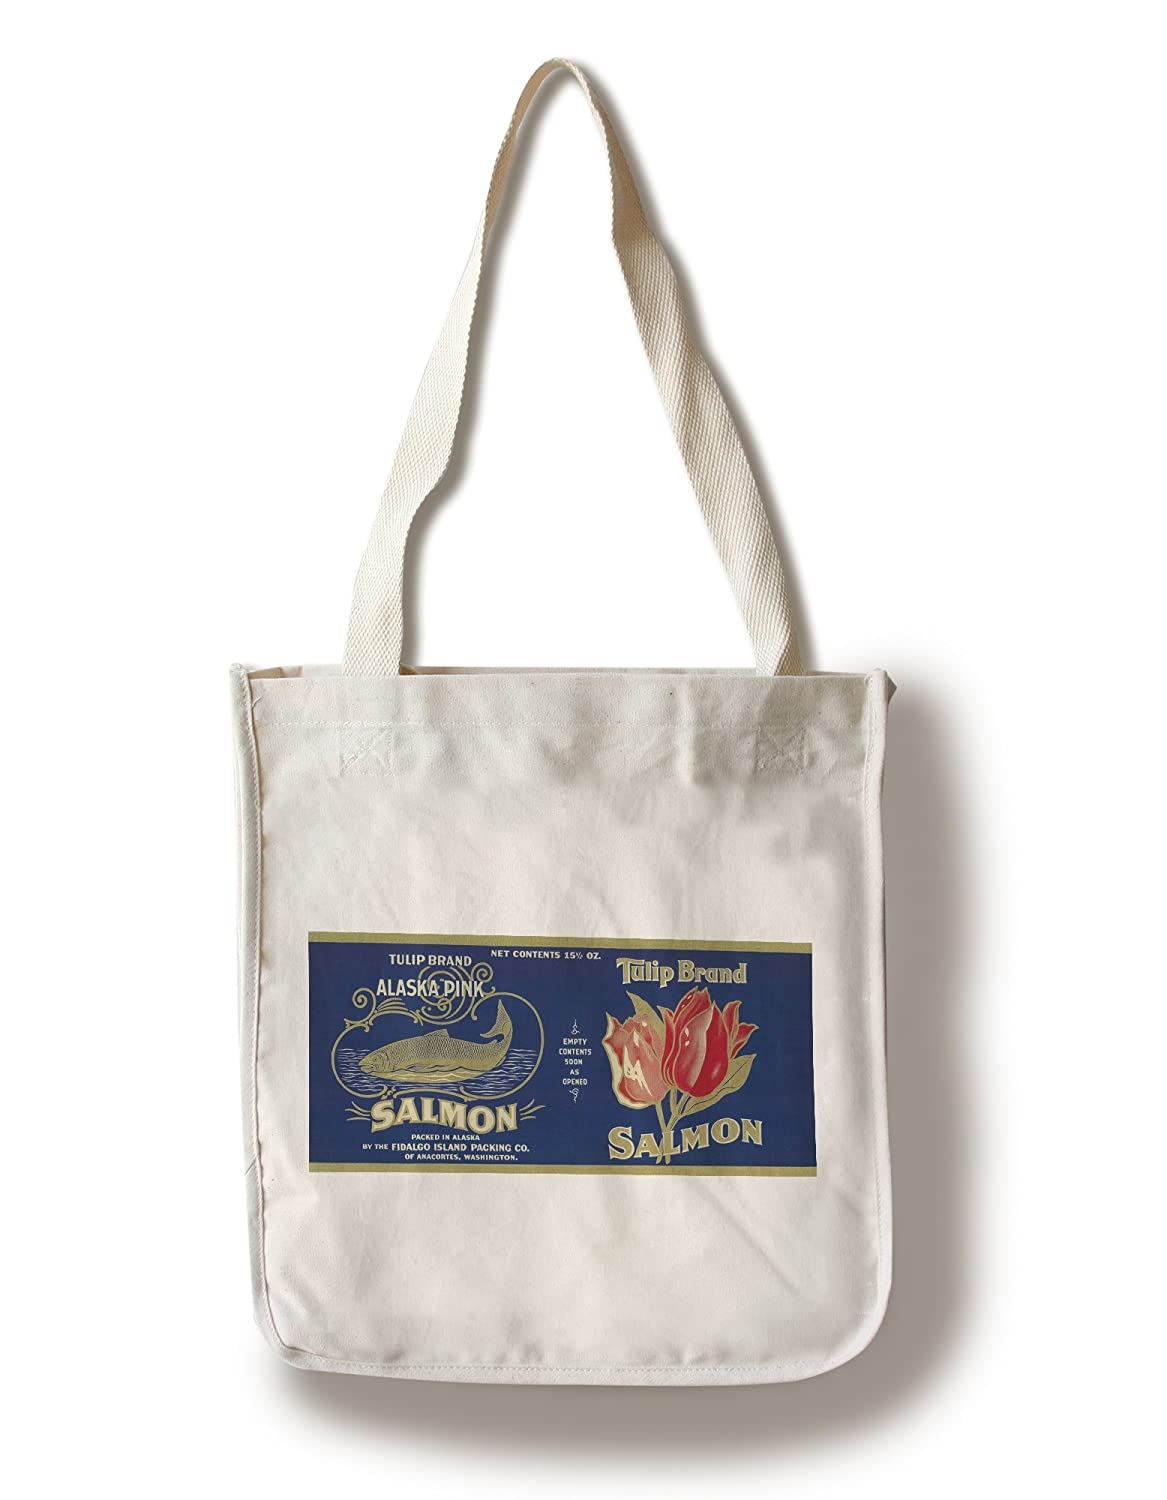 【SEAL限定商品】 チューリップサーモンCanラベル Canvas Canvas Tote Bag Bag Bag LANT-1385-TT B0182QVFX4 Canvas Tote Bag, タルタルーガ:9c77fdb2 --- classikaplus.ru